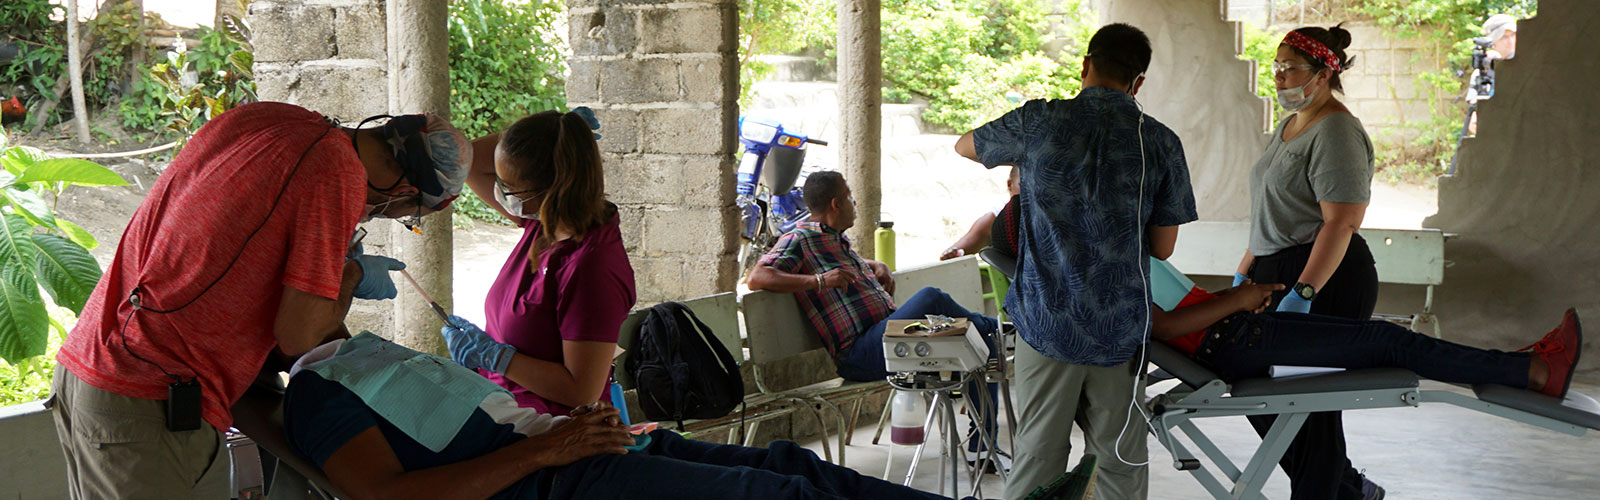 Dental students provide services to patients in the Dominican Republic